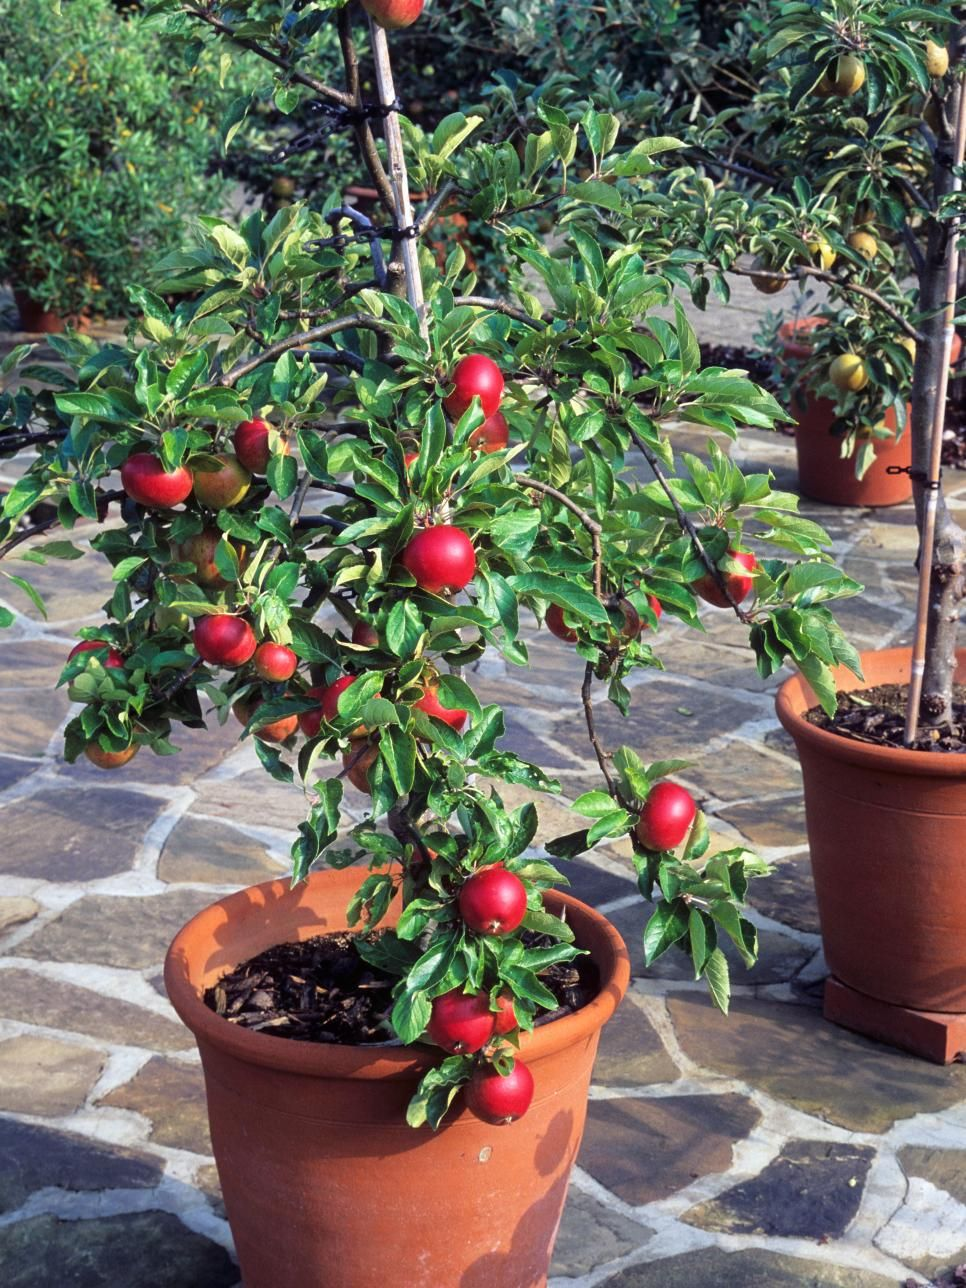 Container gardening 9 fruit plants for pots small for Small garden ideas with pots